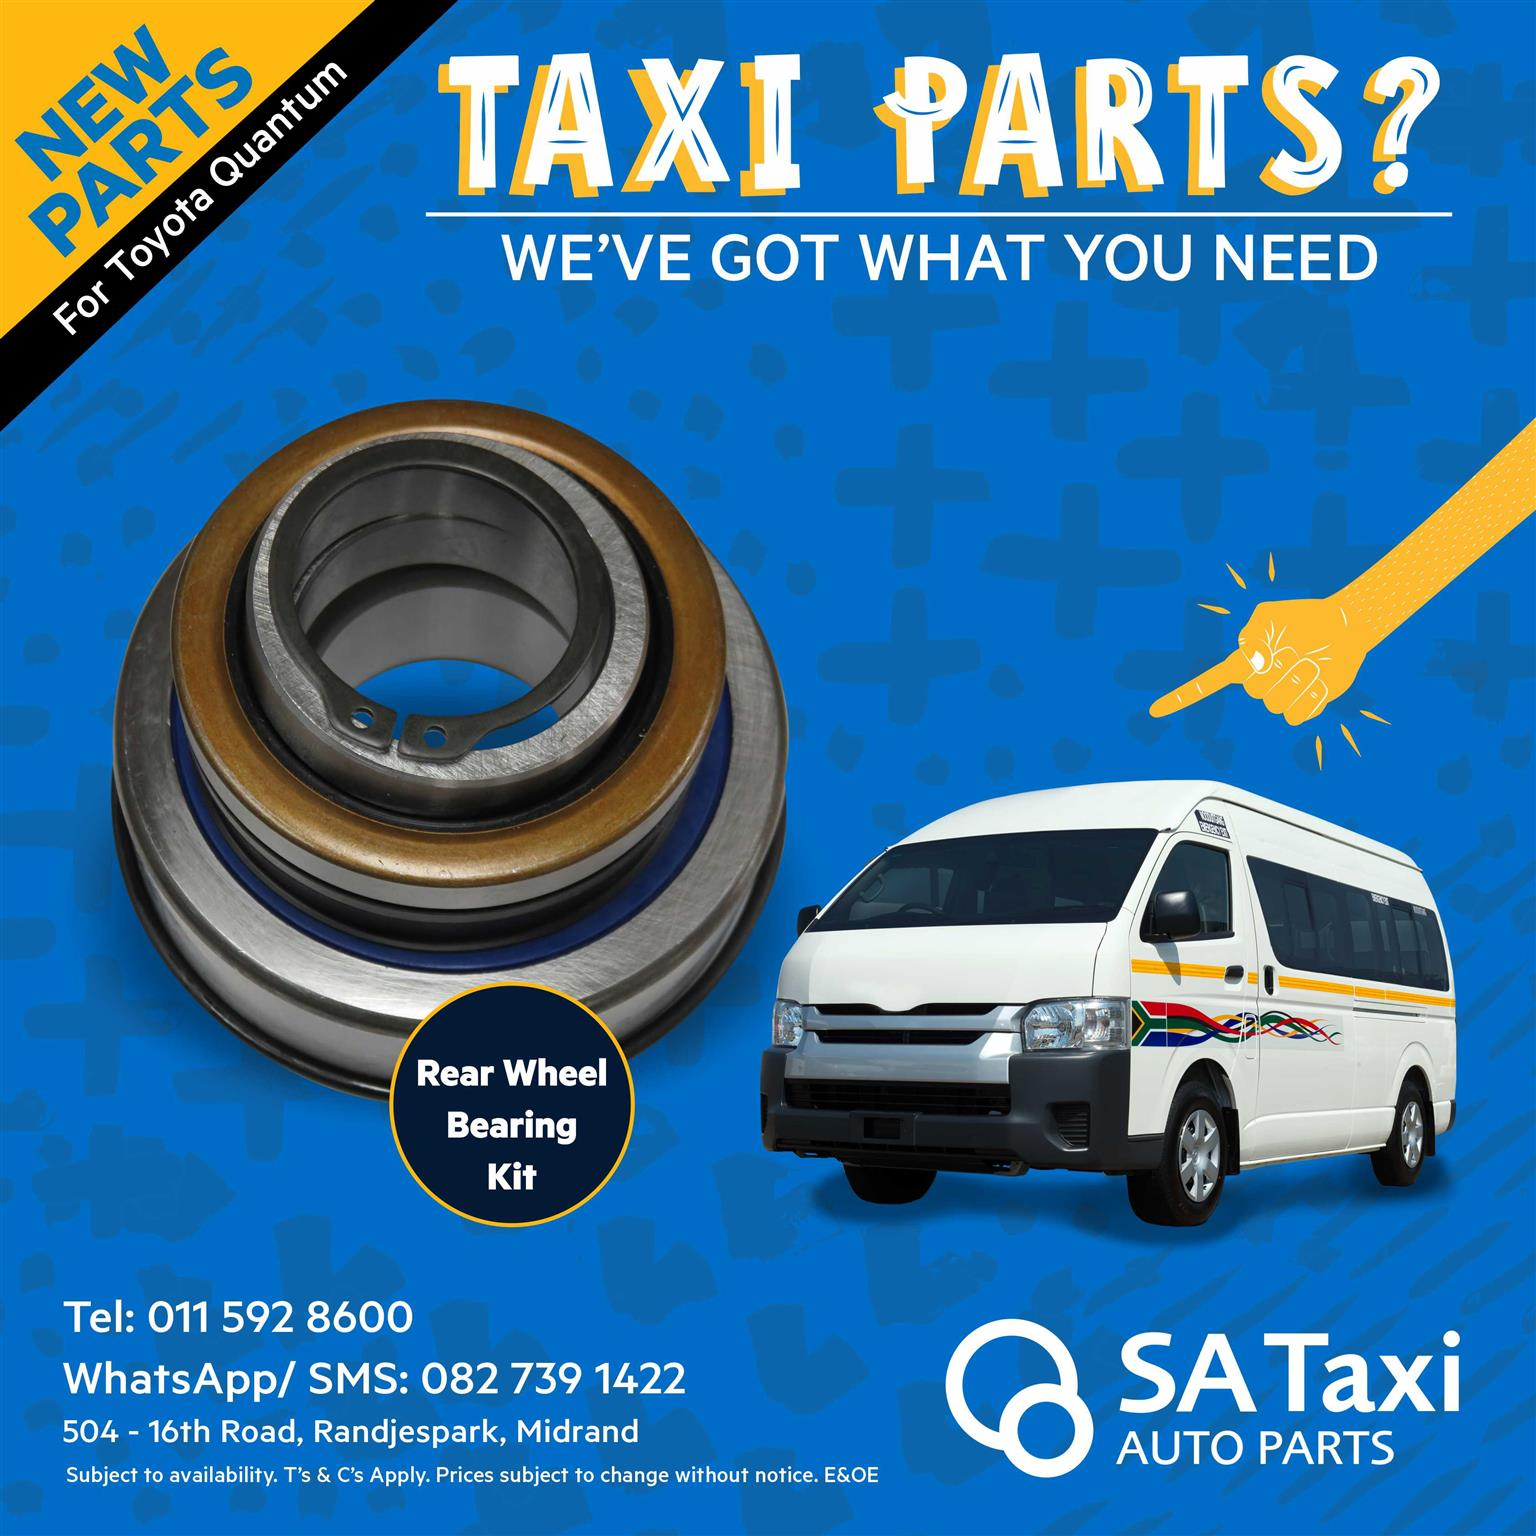 Rear Wheel Bearing Kit suitable for Toyota Quantum - SA Taxi Auto Parts quality new spares